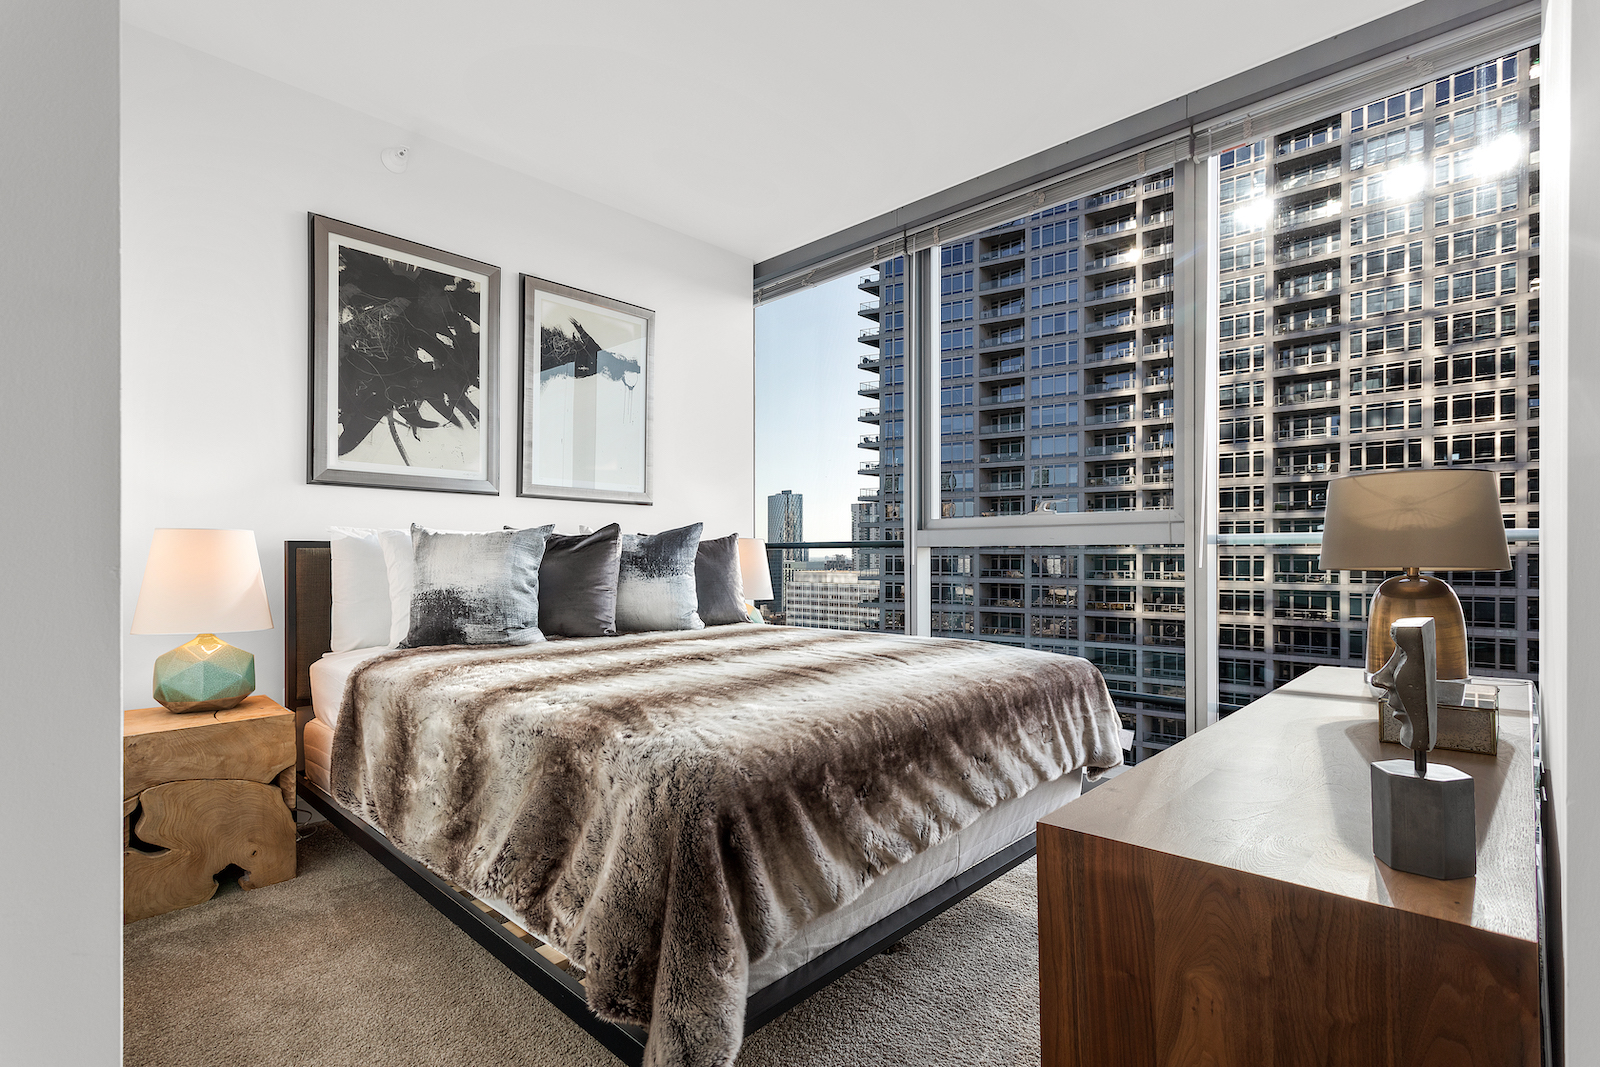 343 West Wolf Point Plaza - 5773USD / month